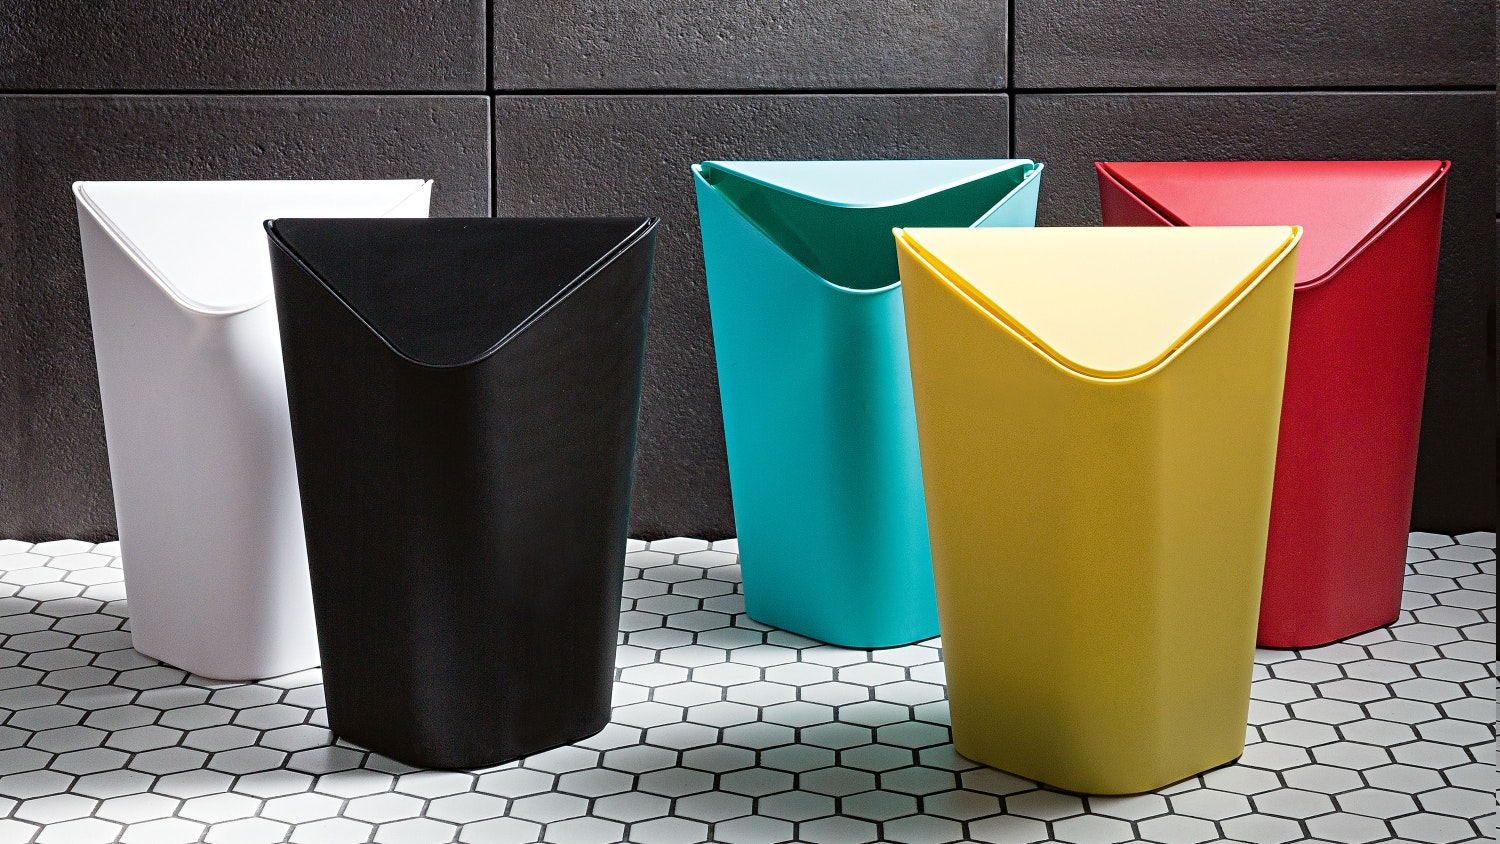 Umbra Corner Rubbish Bin